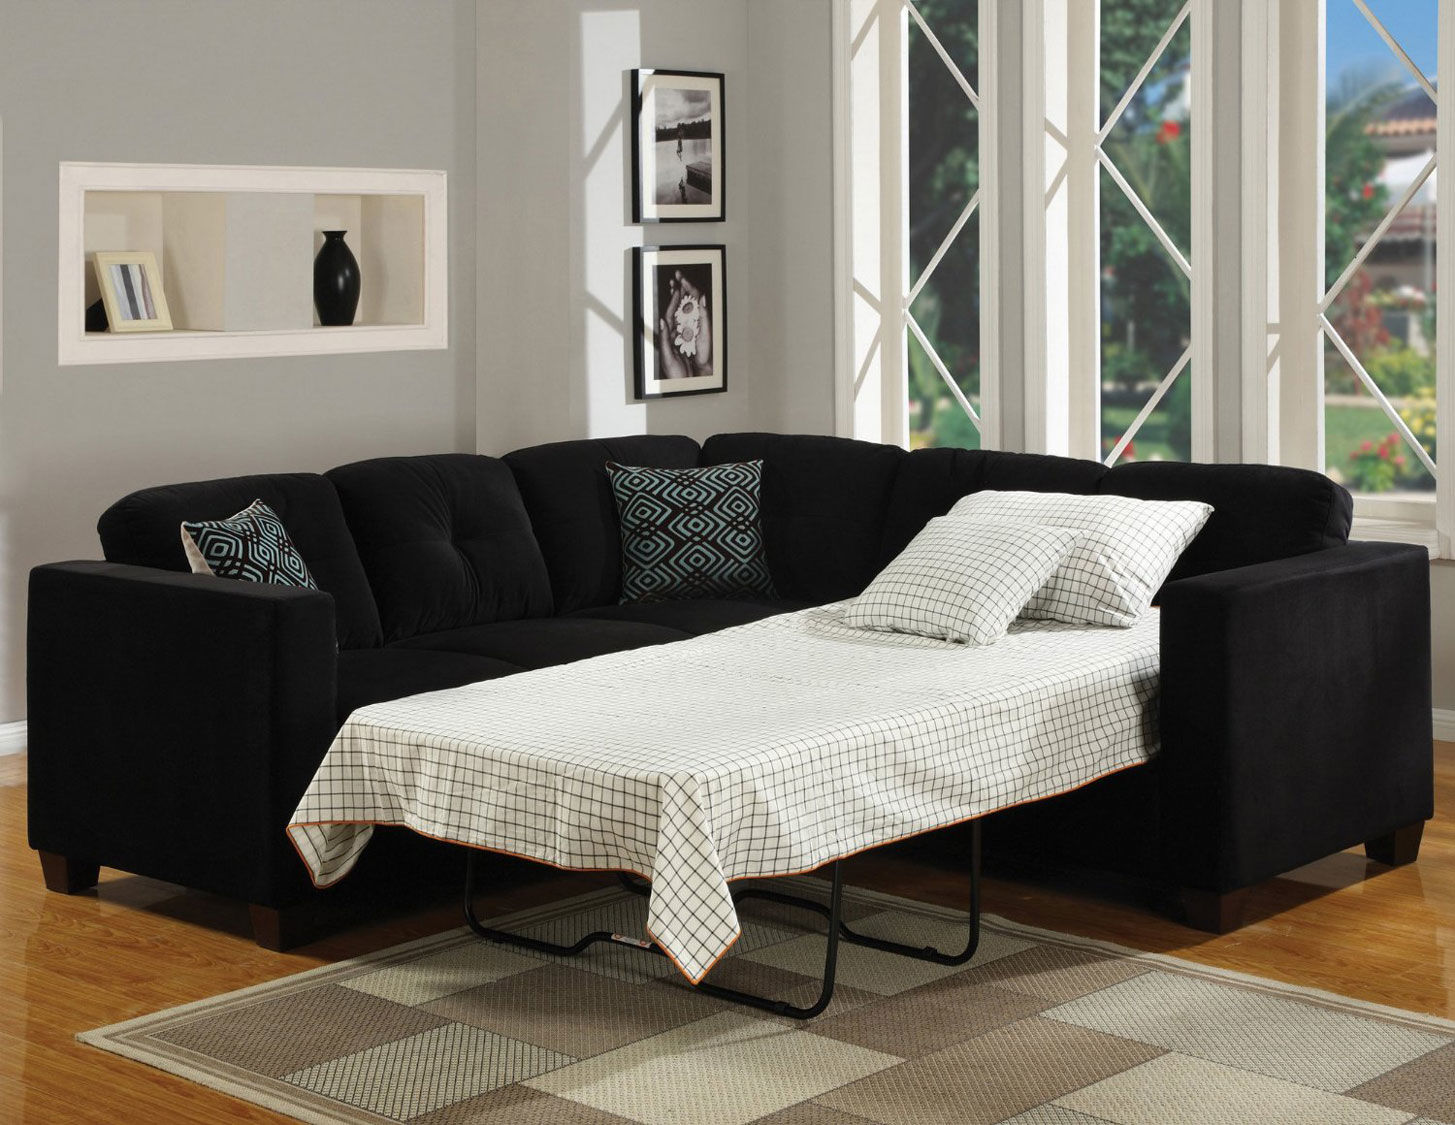 finest sectional sleeper sofa queen construction-Sensational Sectional Sleeper sofa Queen Online